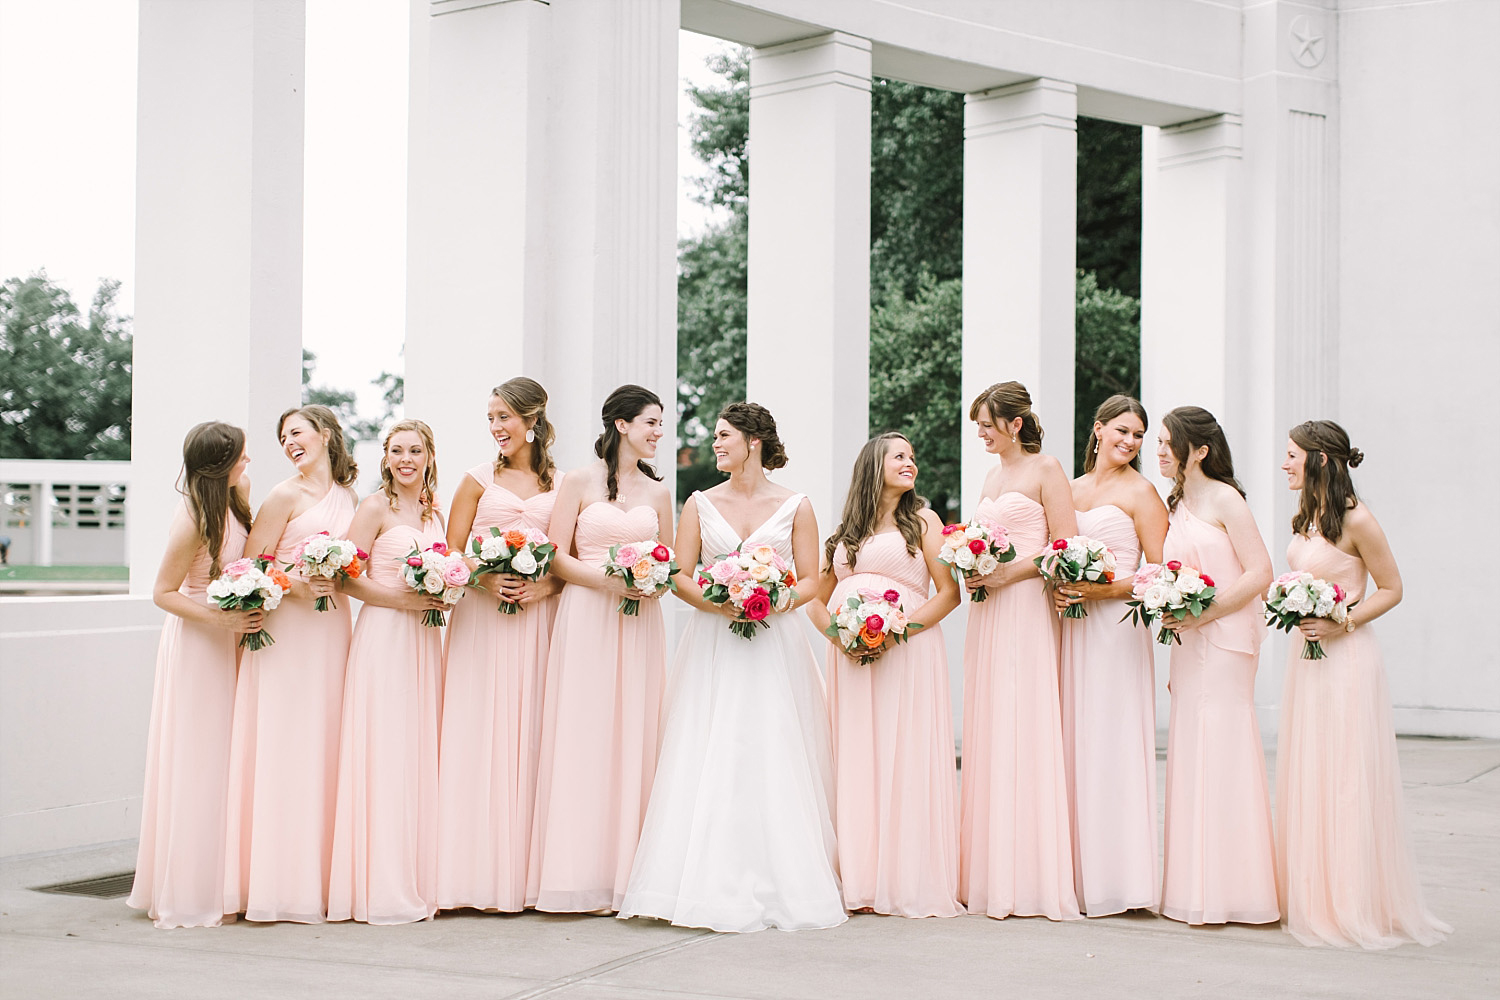 Old Red Museum bridesmaids in blue dresses holding colorful pink orange and white bouquets